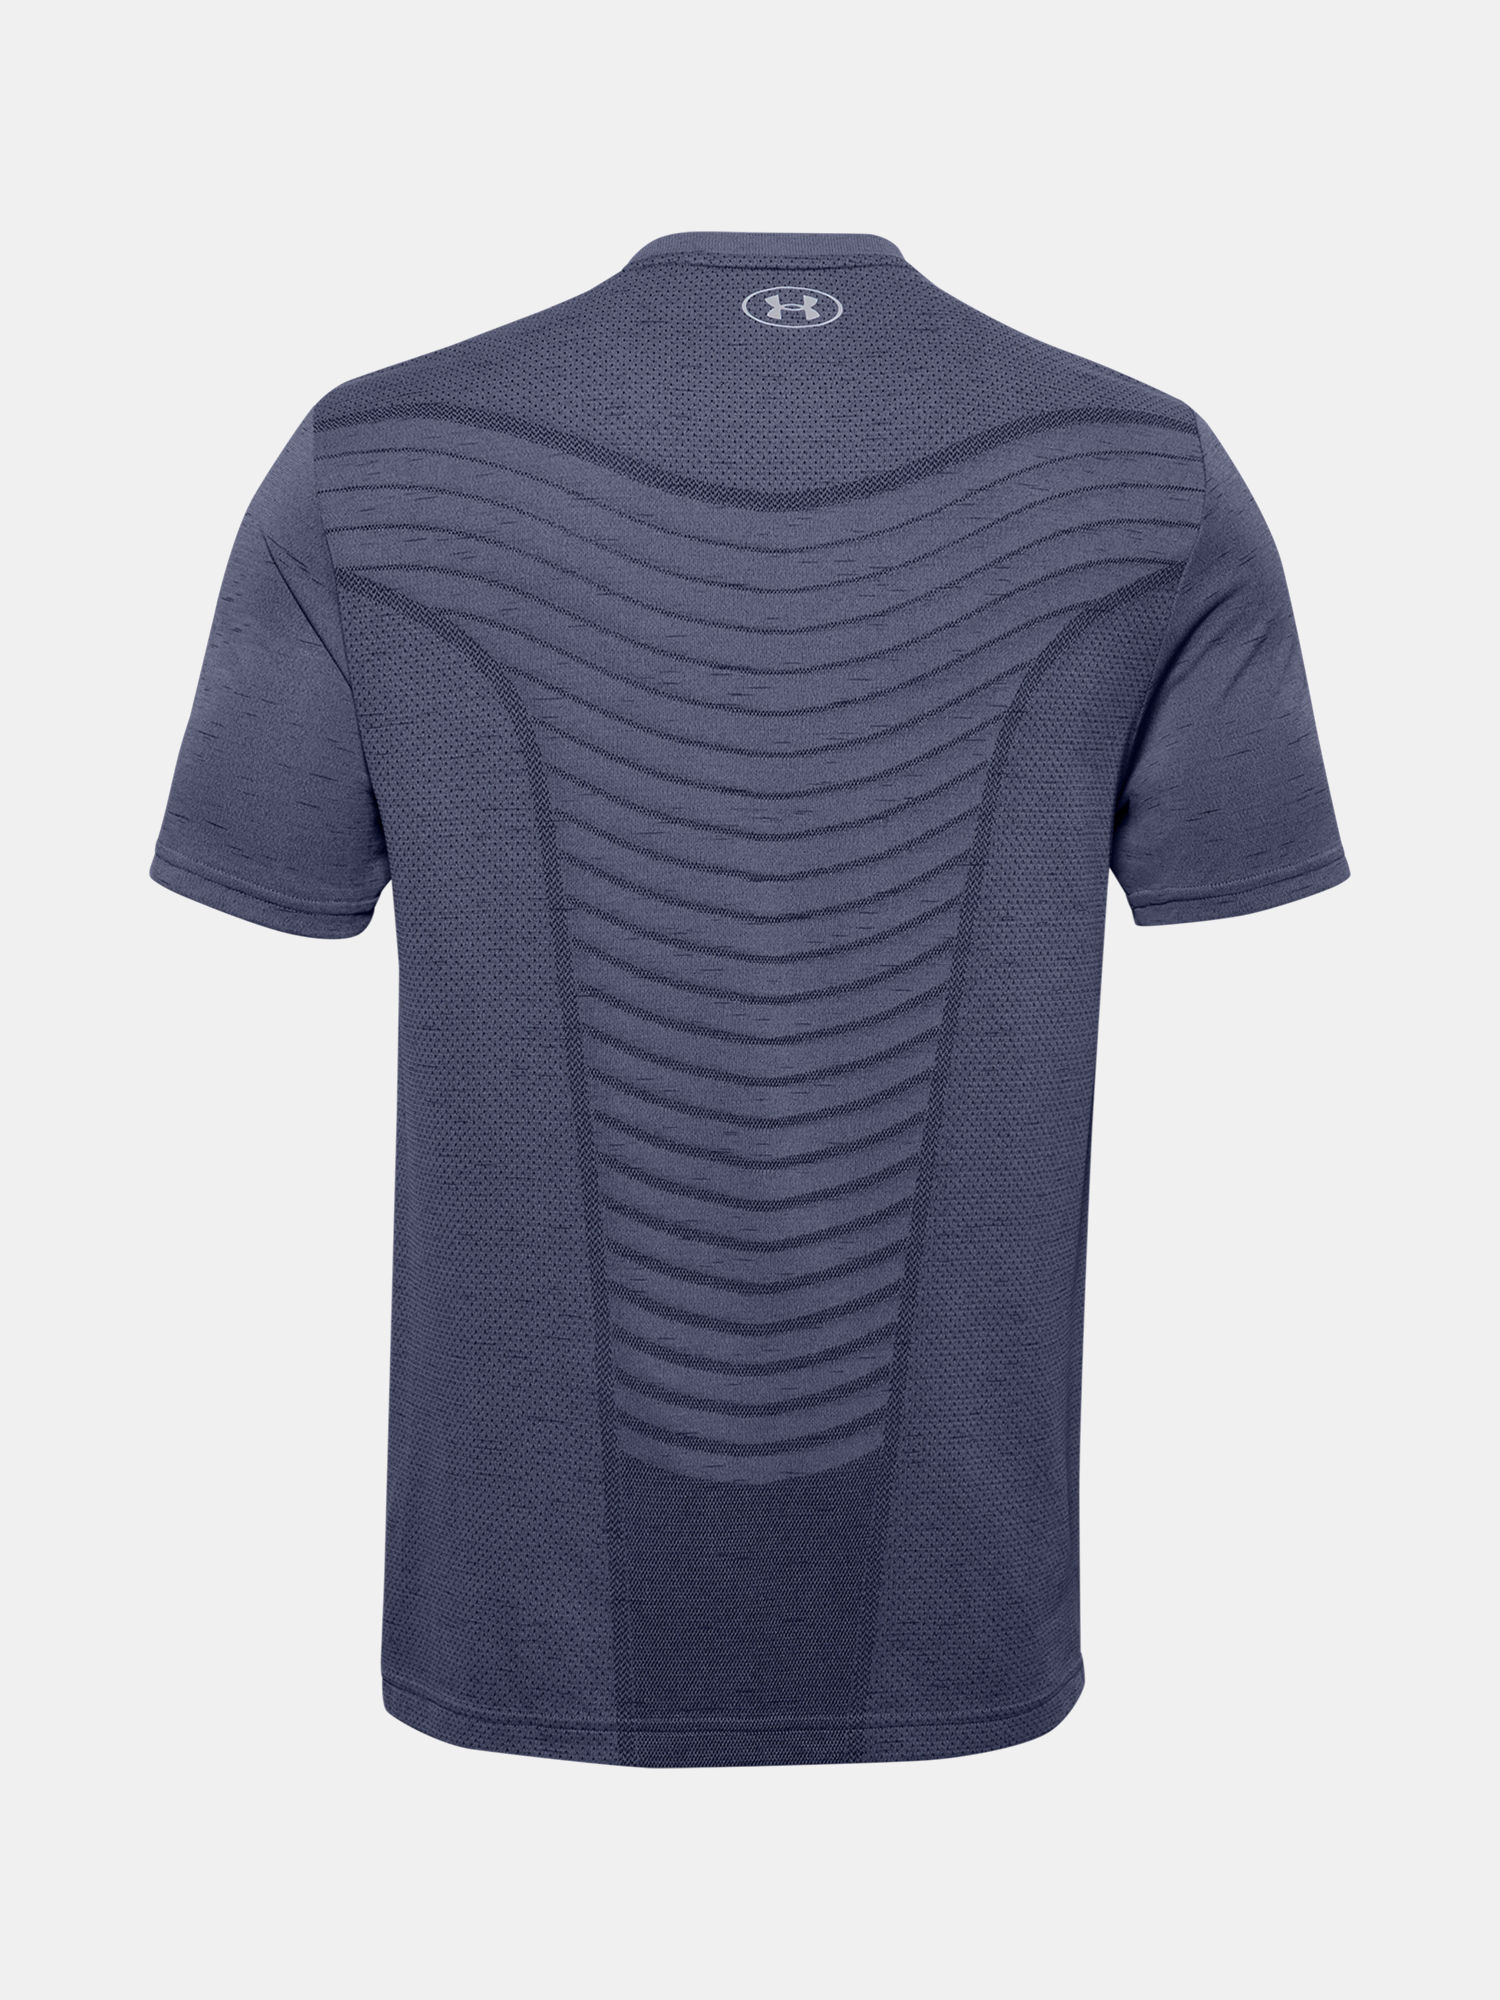 Tričko Under Armour Seamless Wave Ss (4)